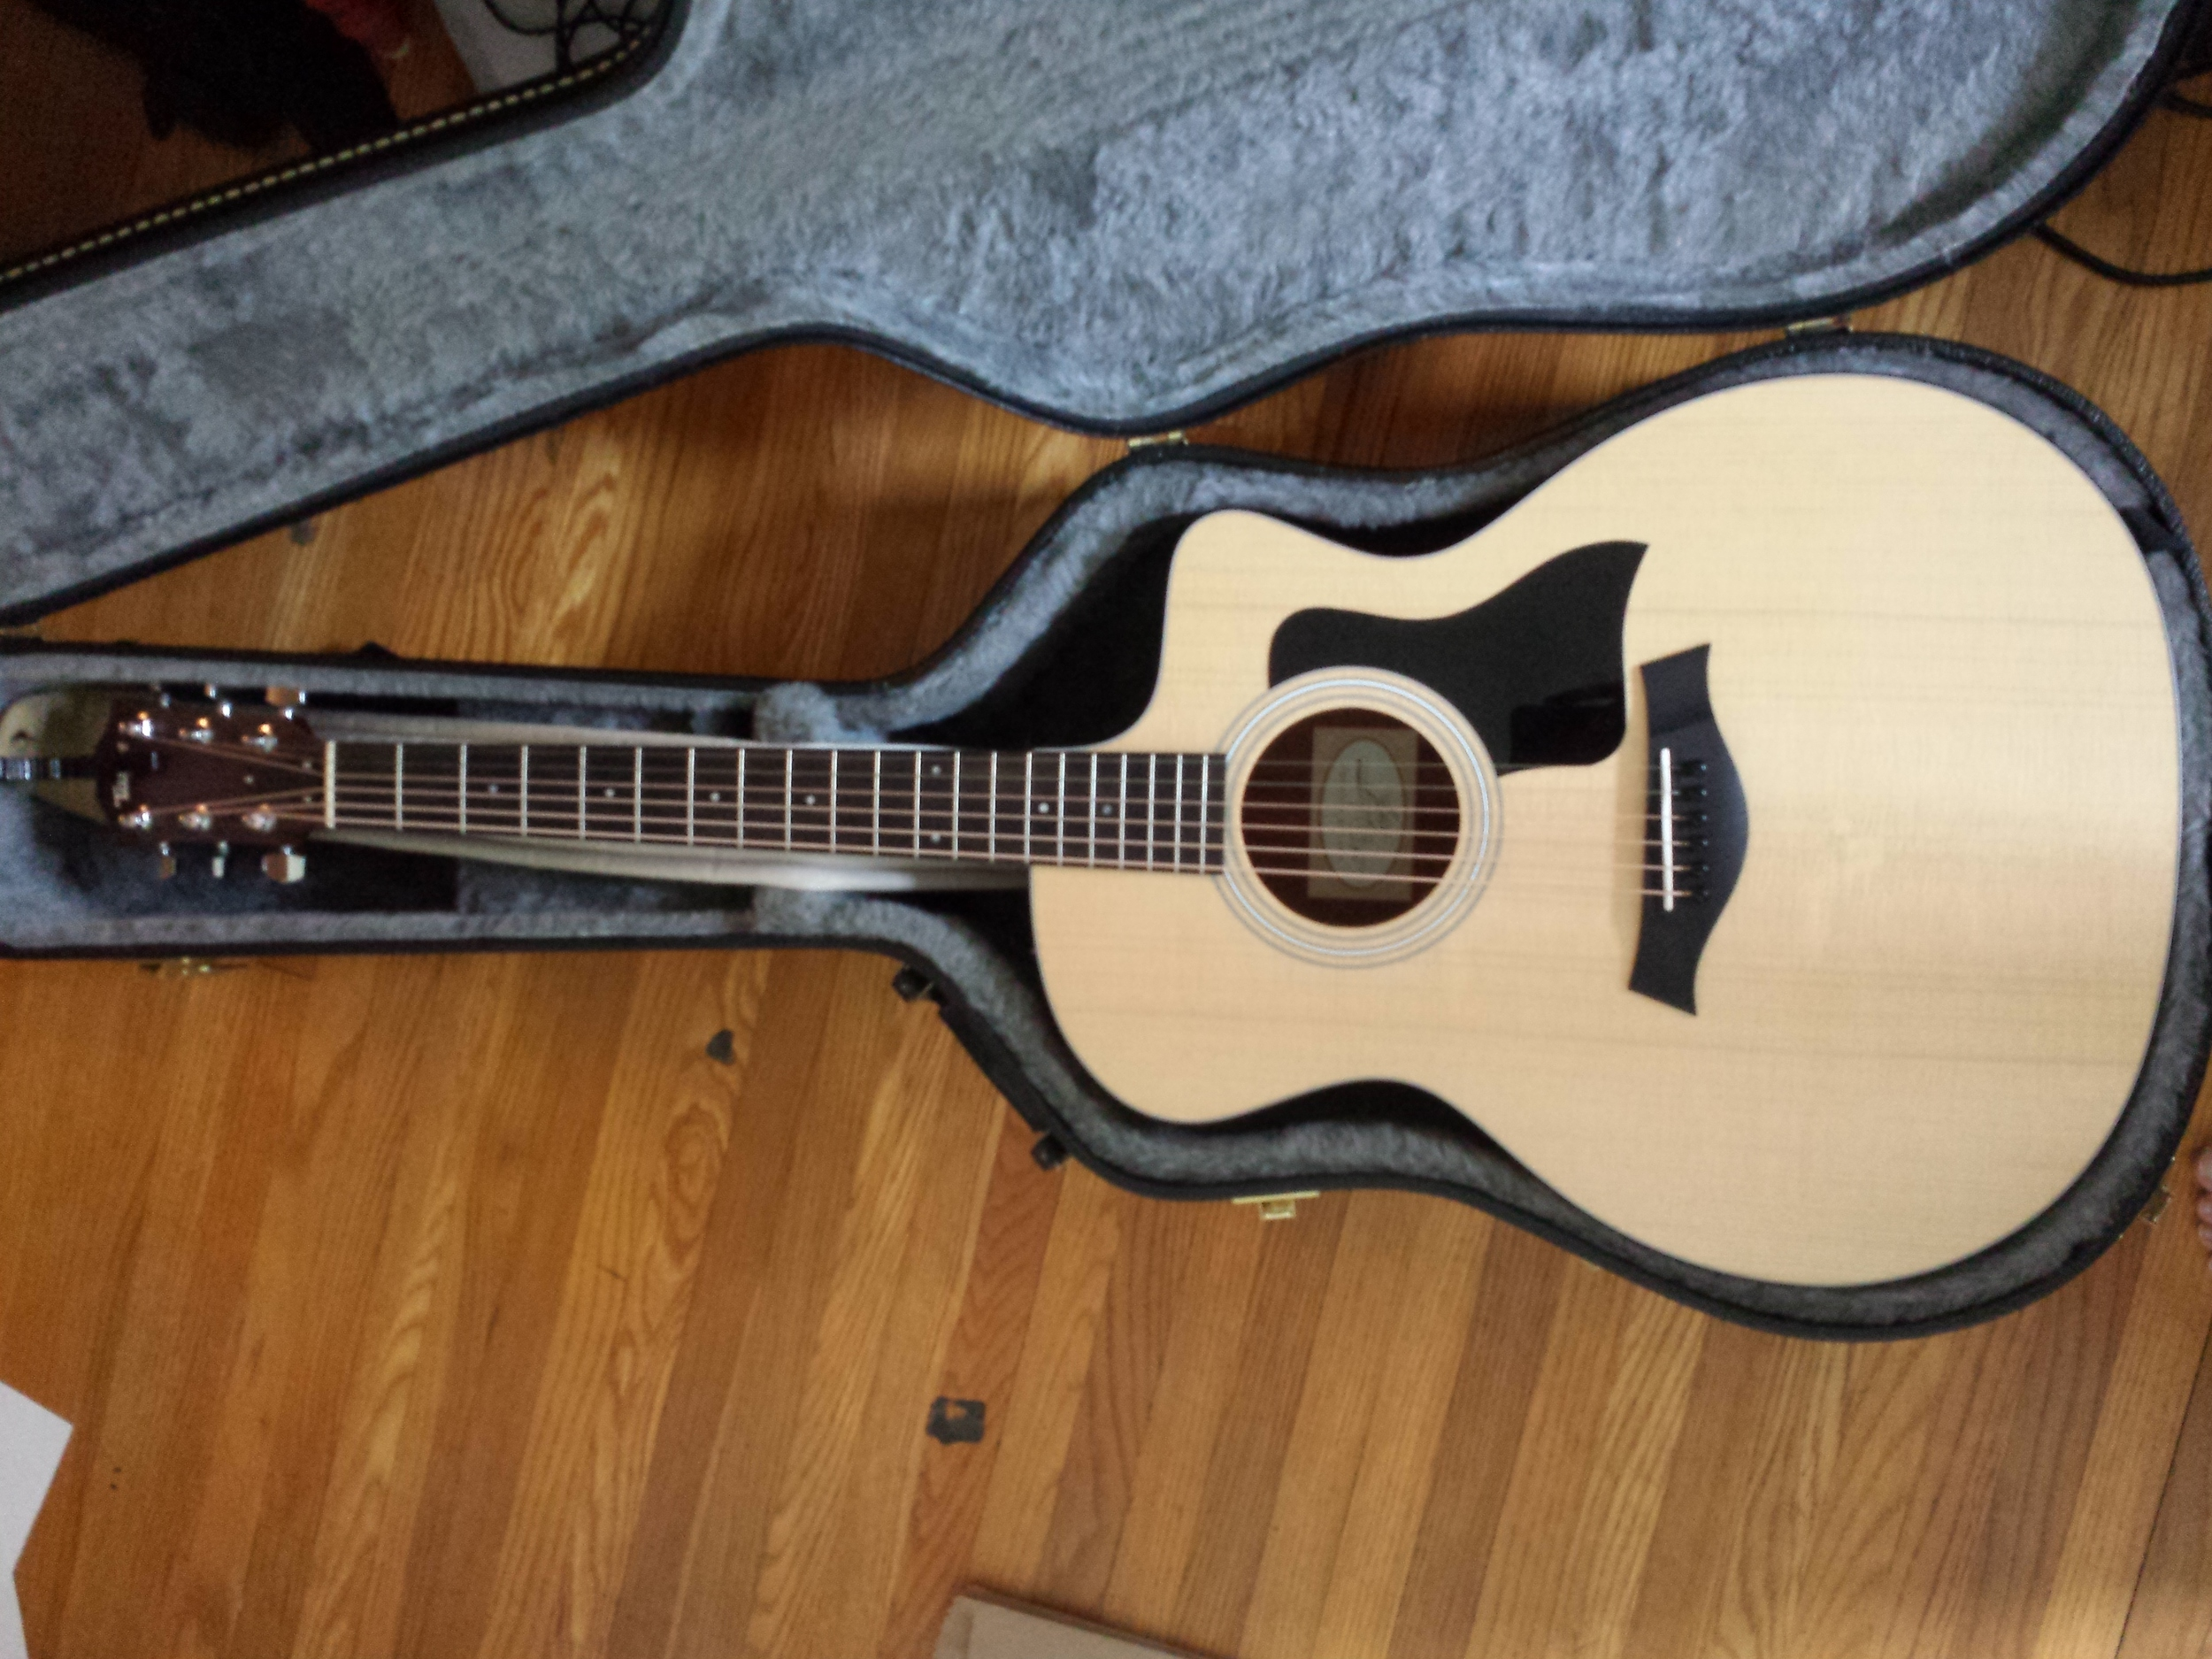 New guitar bb. A Taylor model.